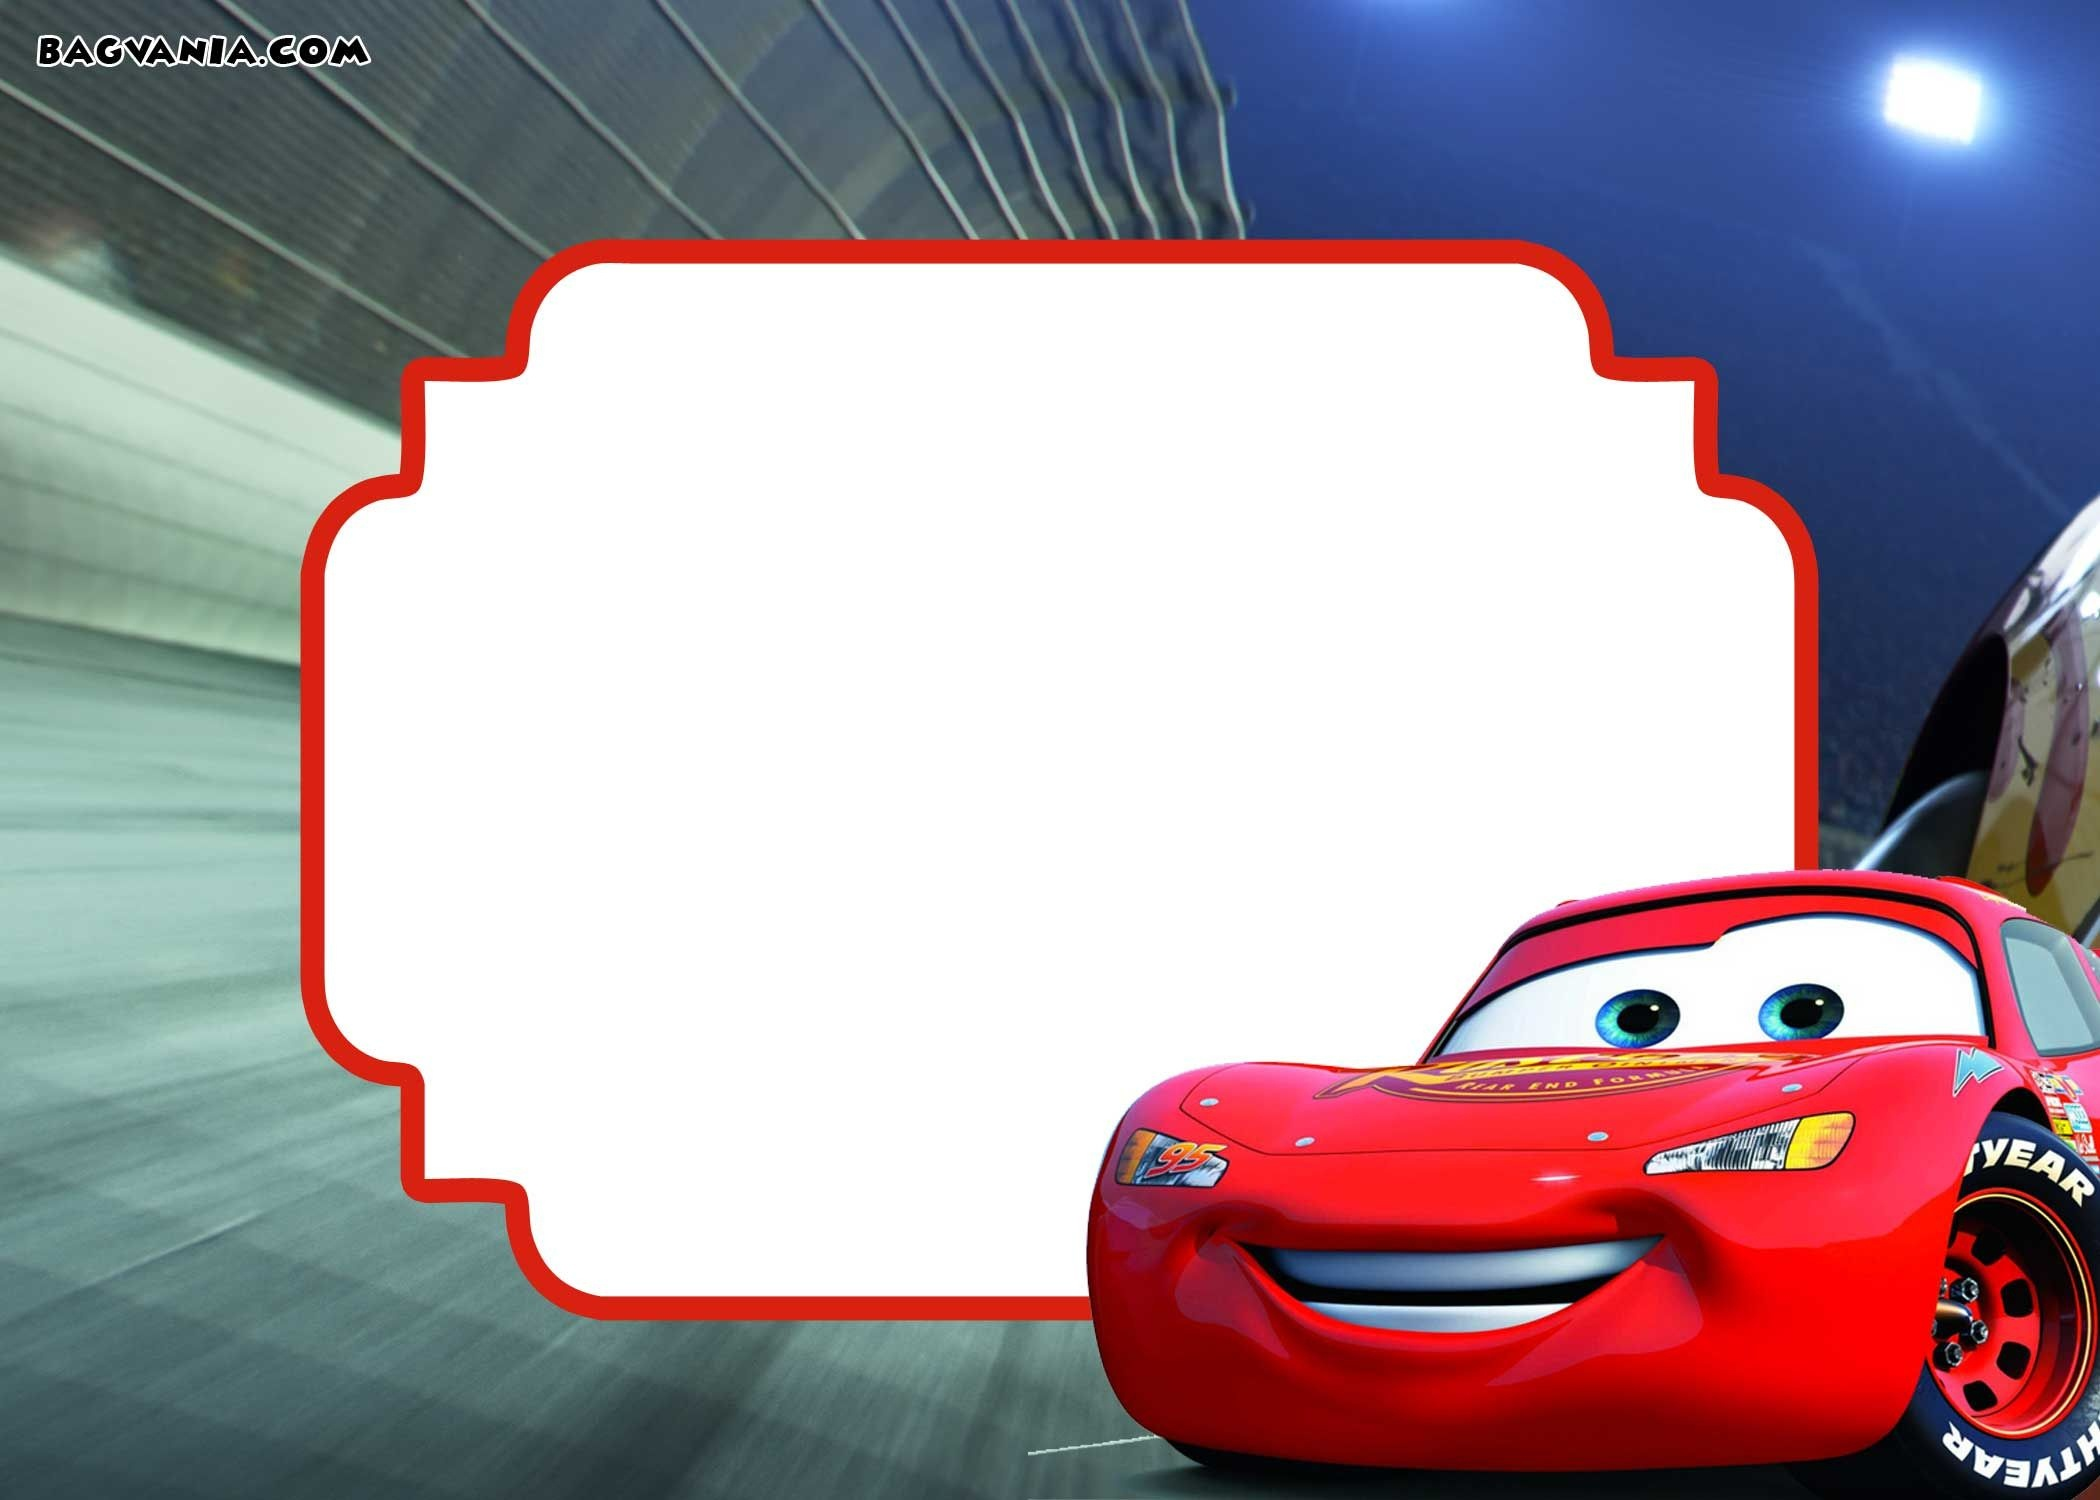 Download Now Free Cars Birthday Invitations | Bagvania Invitation In - Free Printable Birthday Invitations Cars Theme